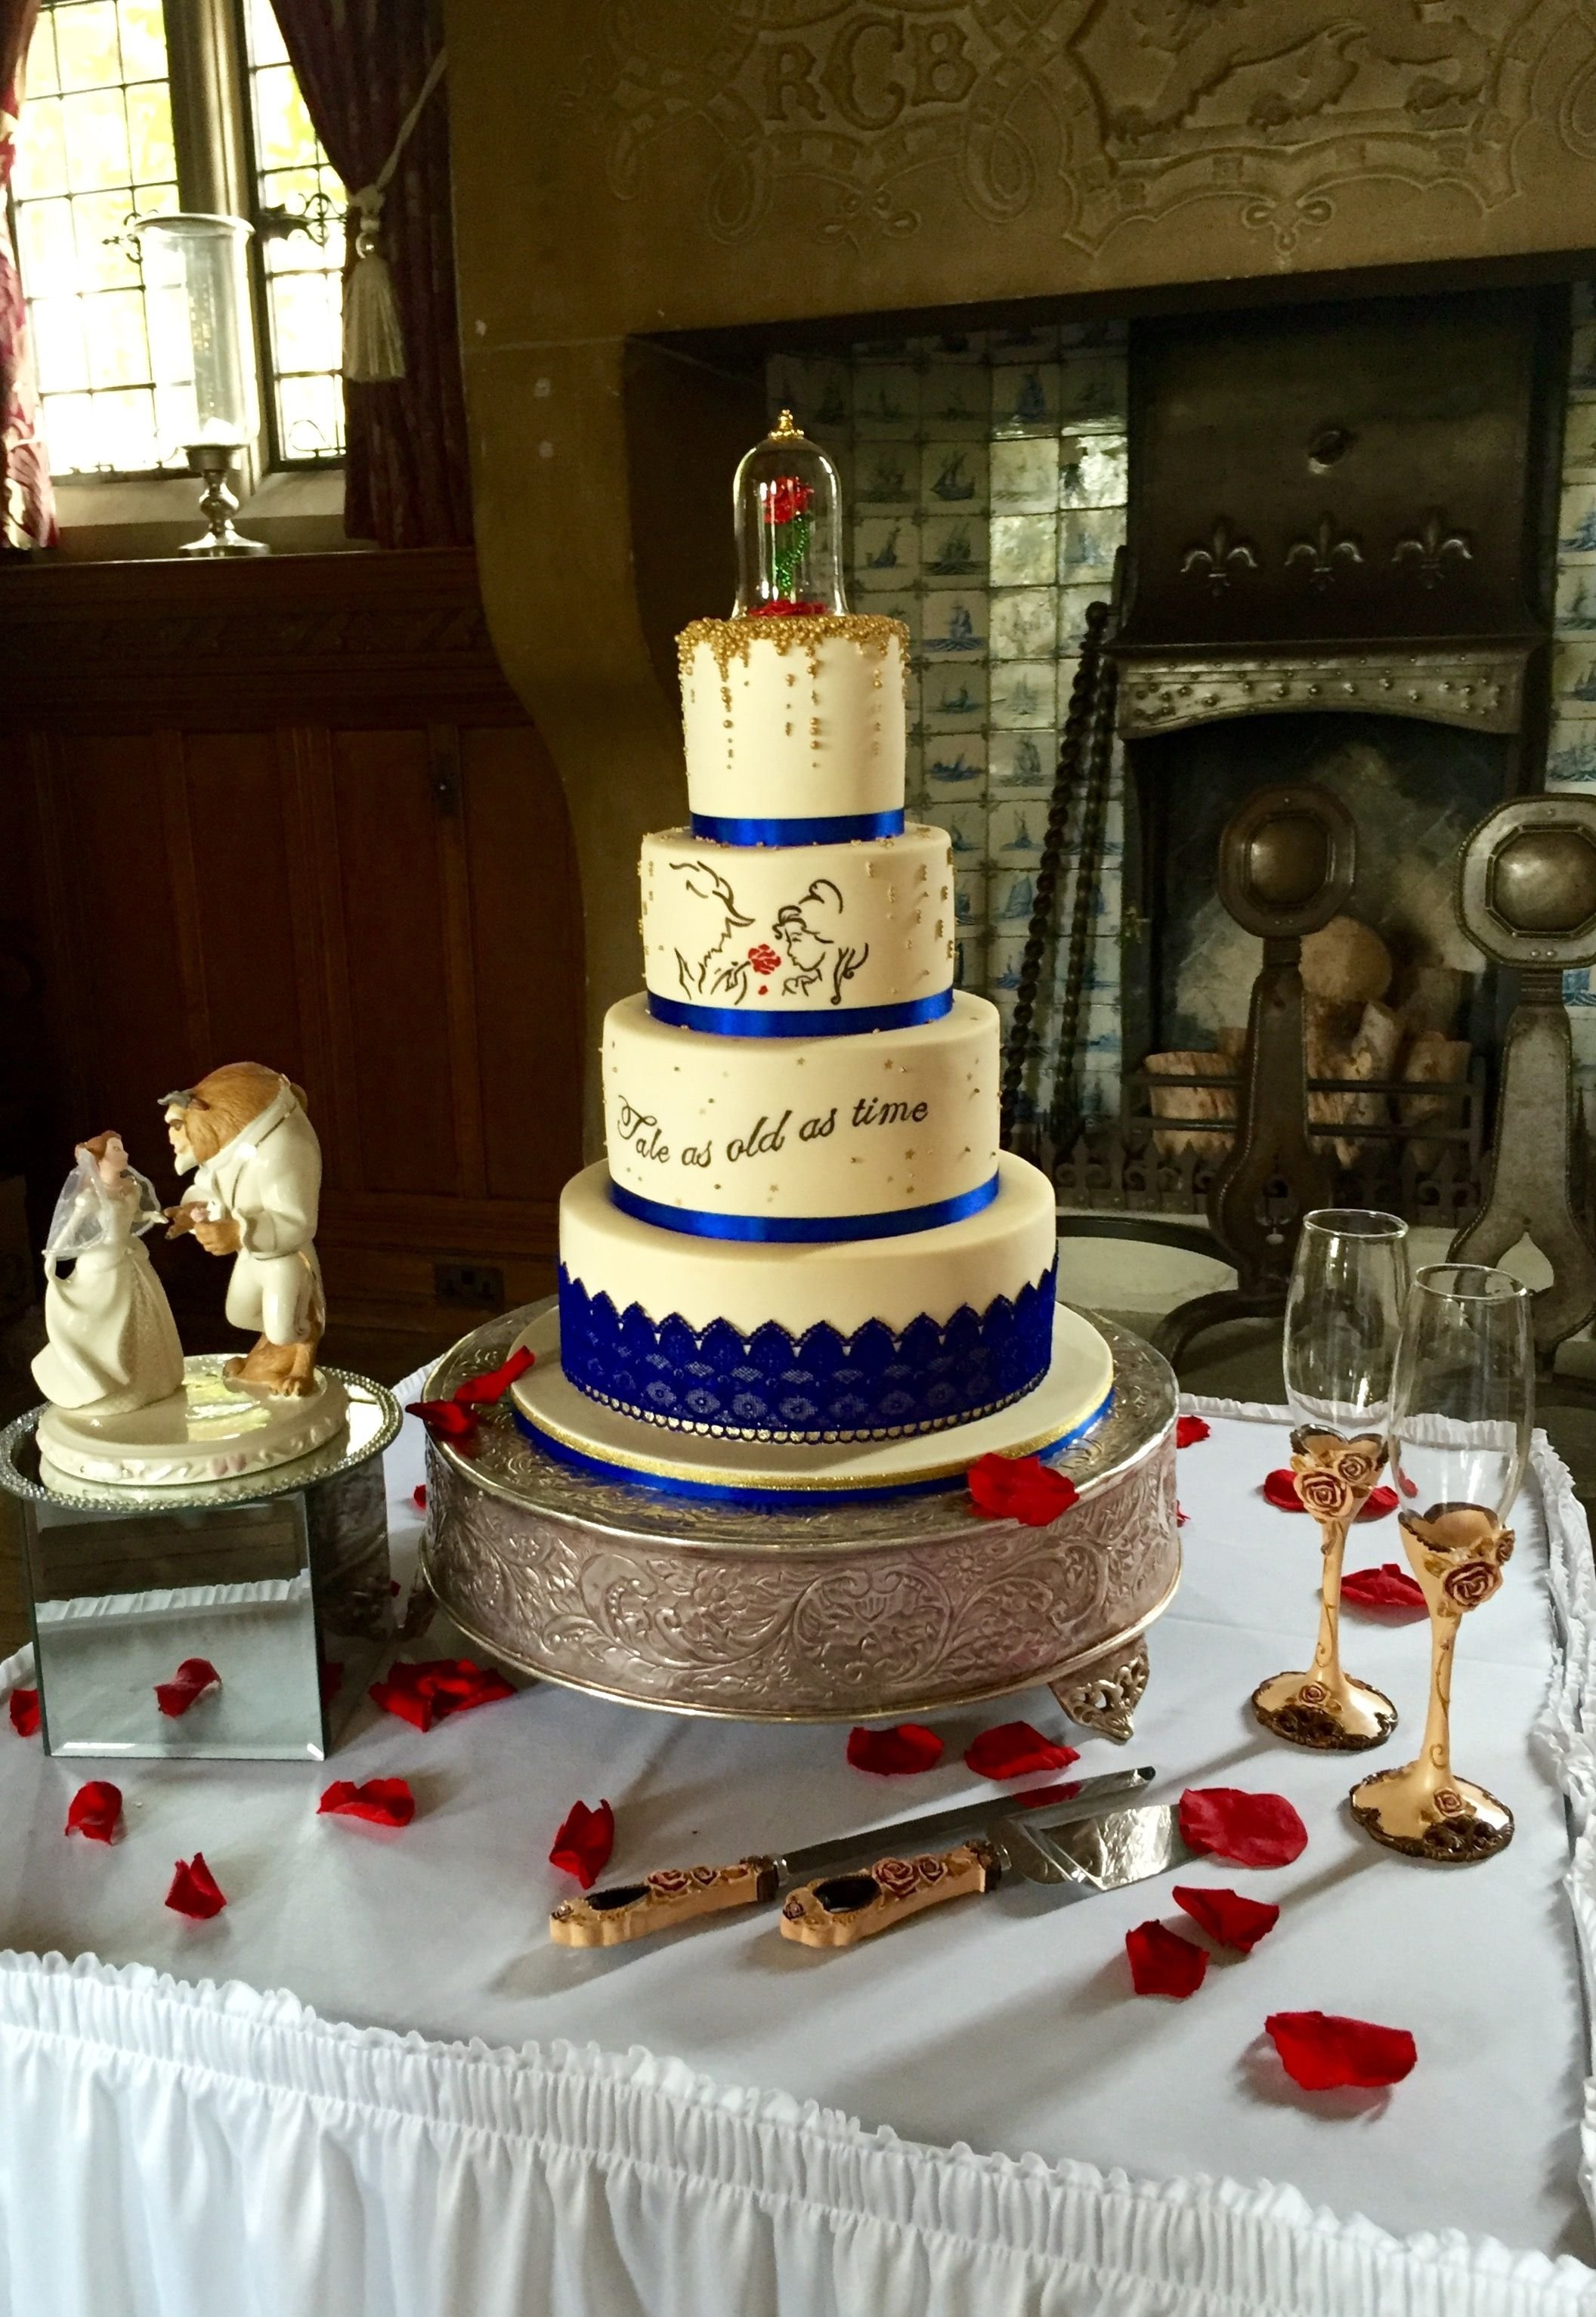 10 Gorgeous Beauty And The Beast Wedding Theme Ideas beauty and the beast wedding cake today for johnson and clark 2020